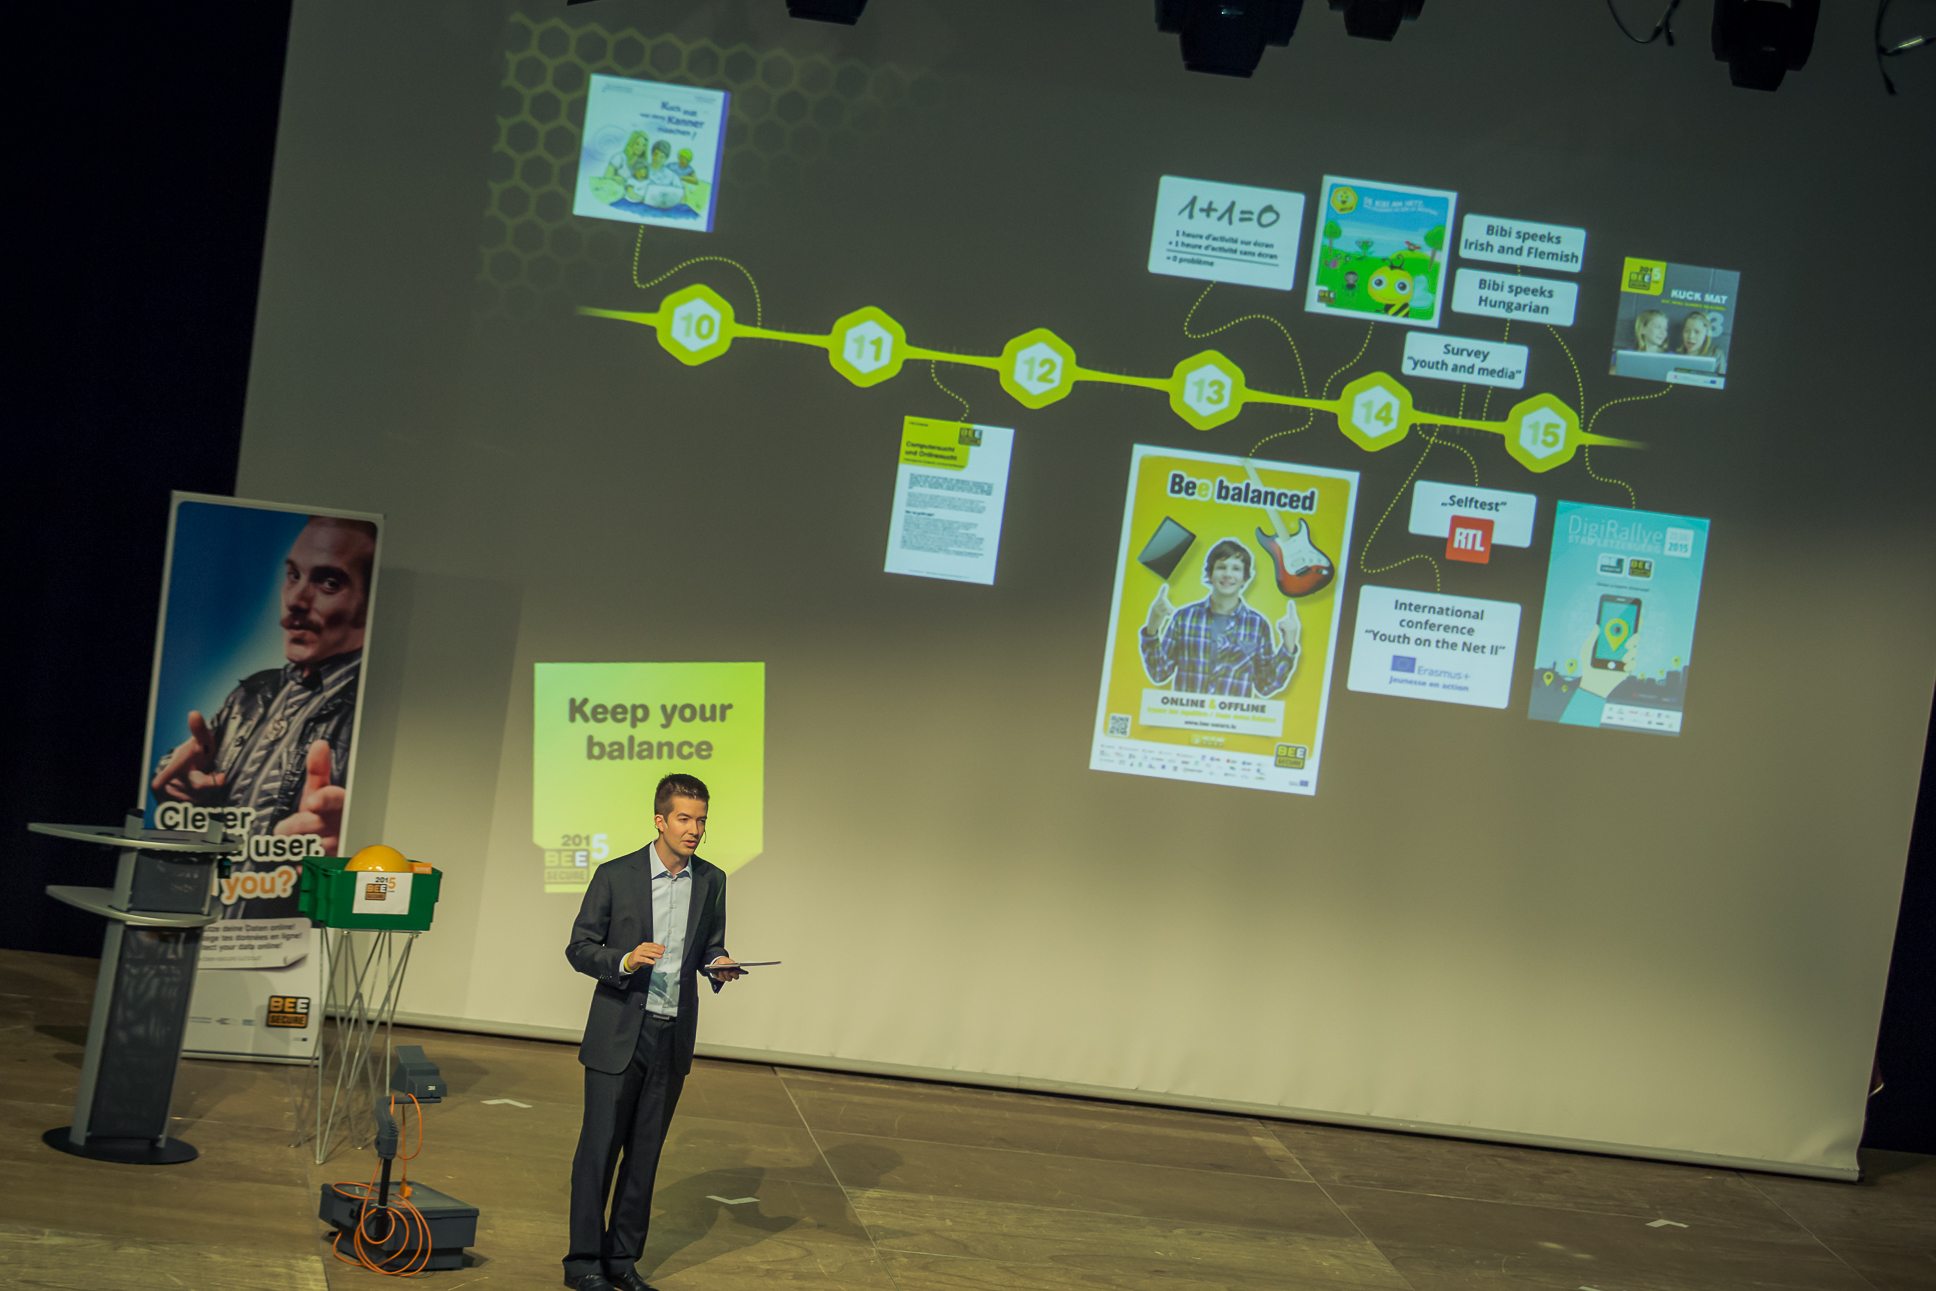 2015.10.09 - 5 Jahre BeeSecure-59